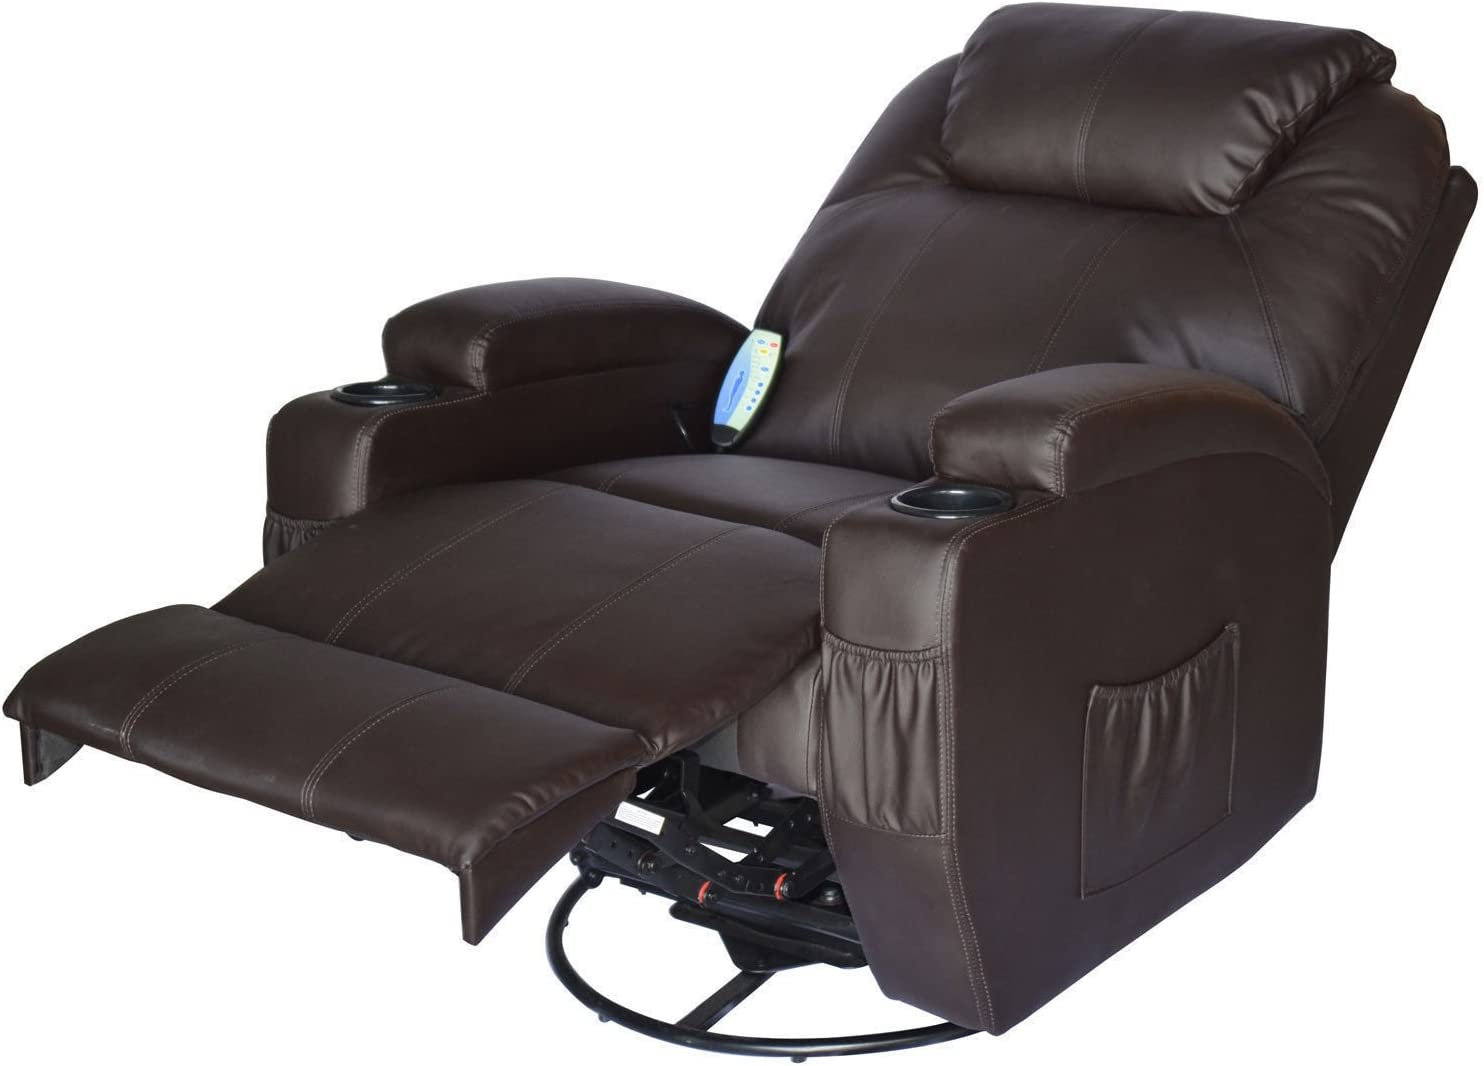 Homcom PU Leather Padded Recliner reclined